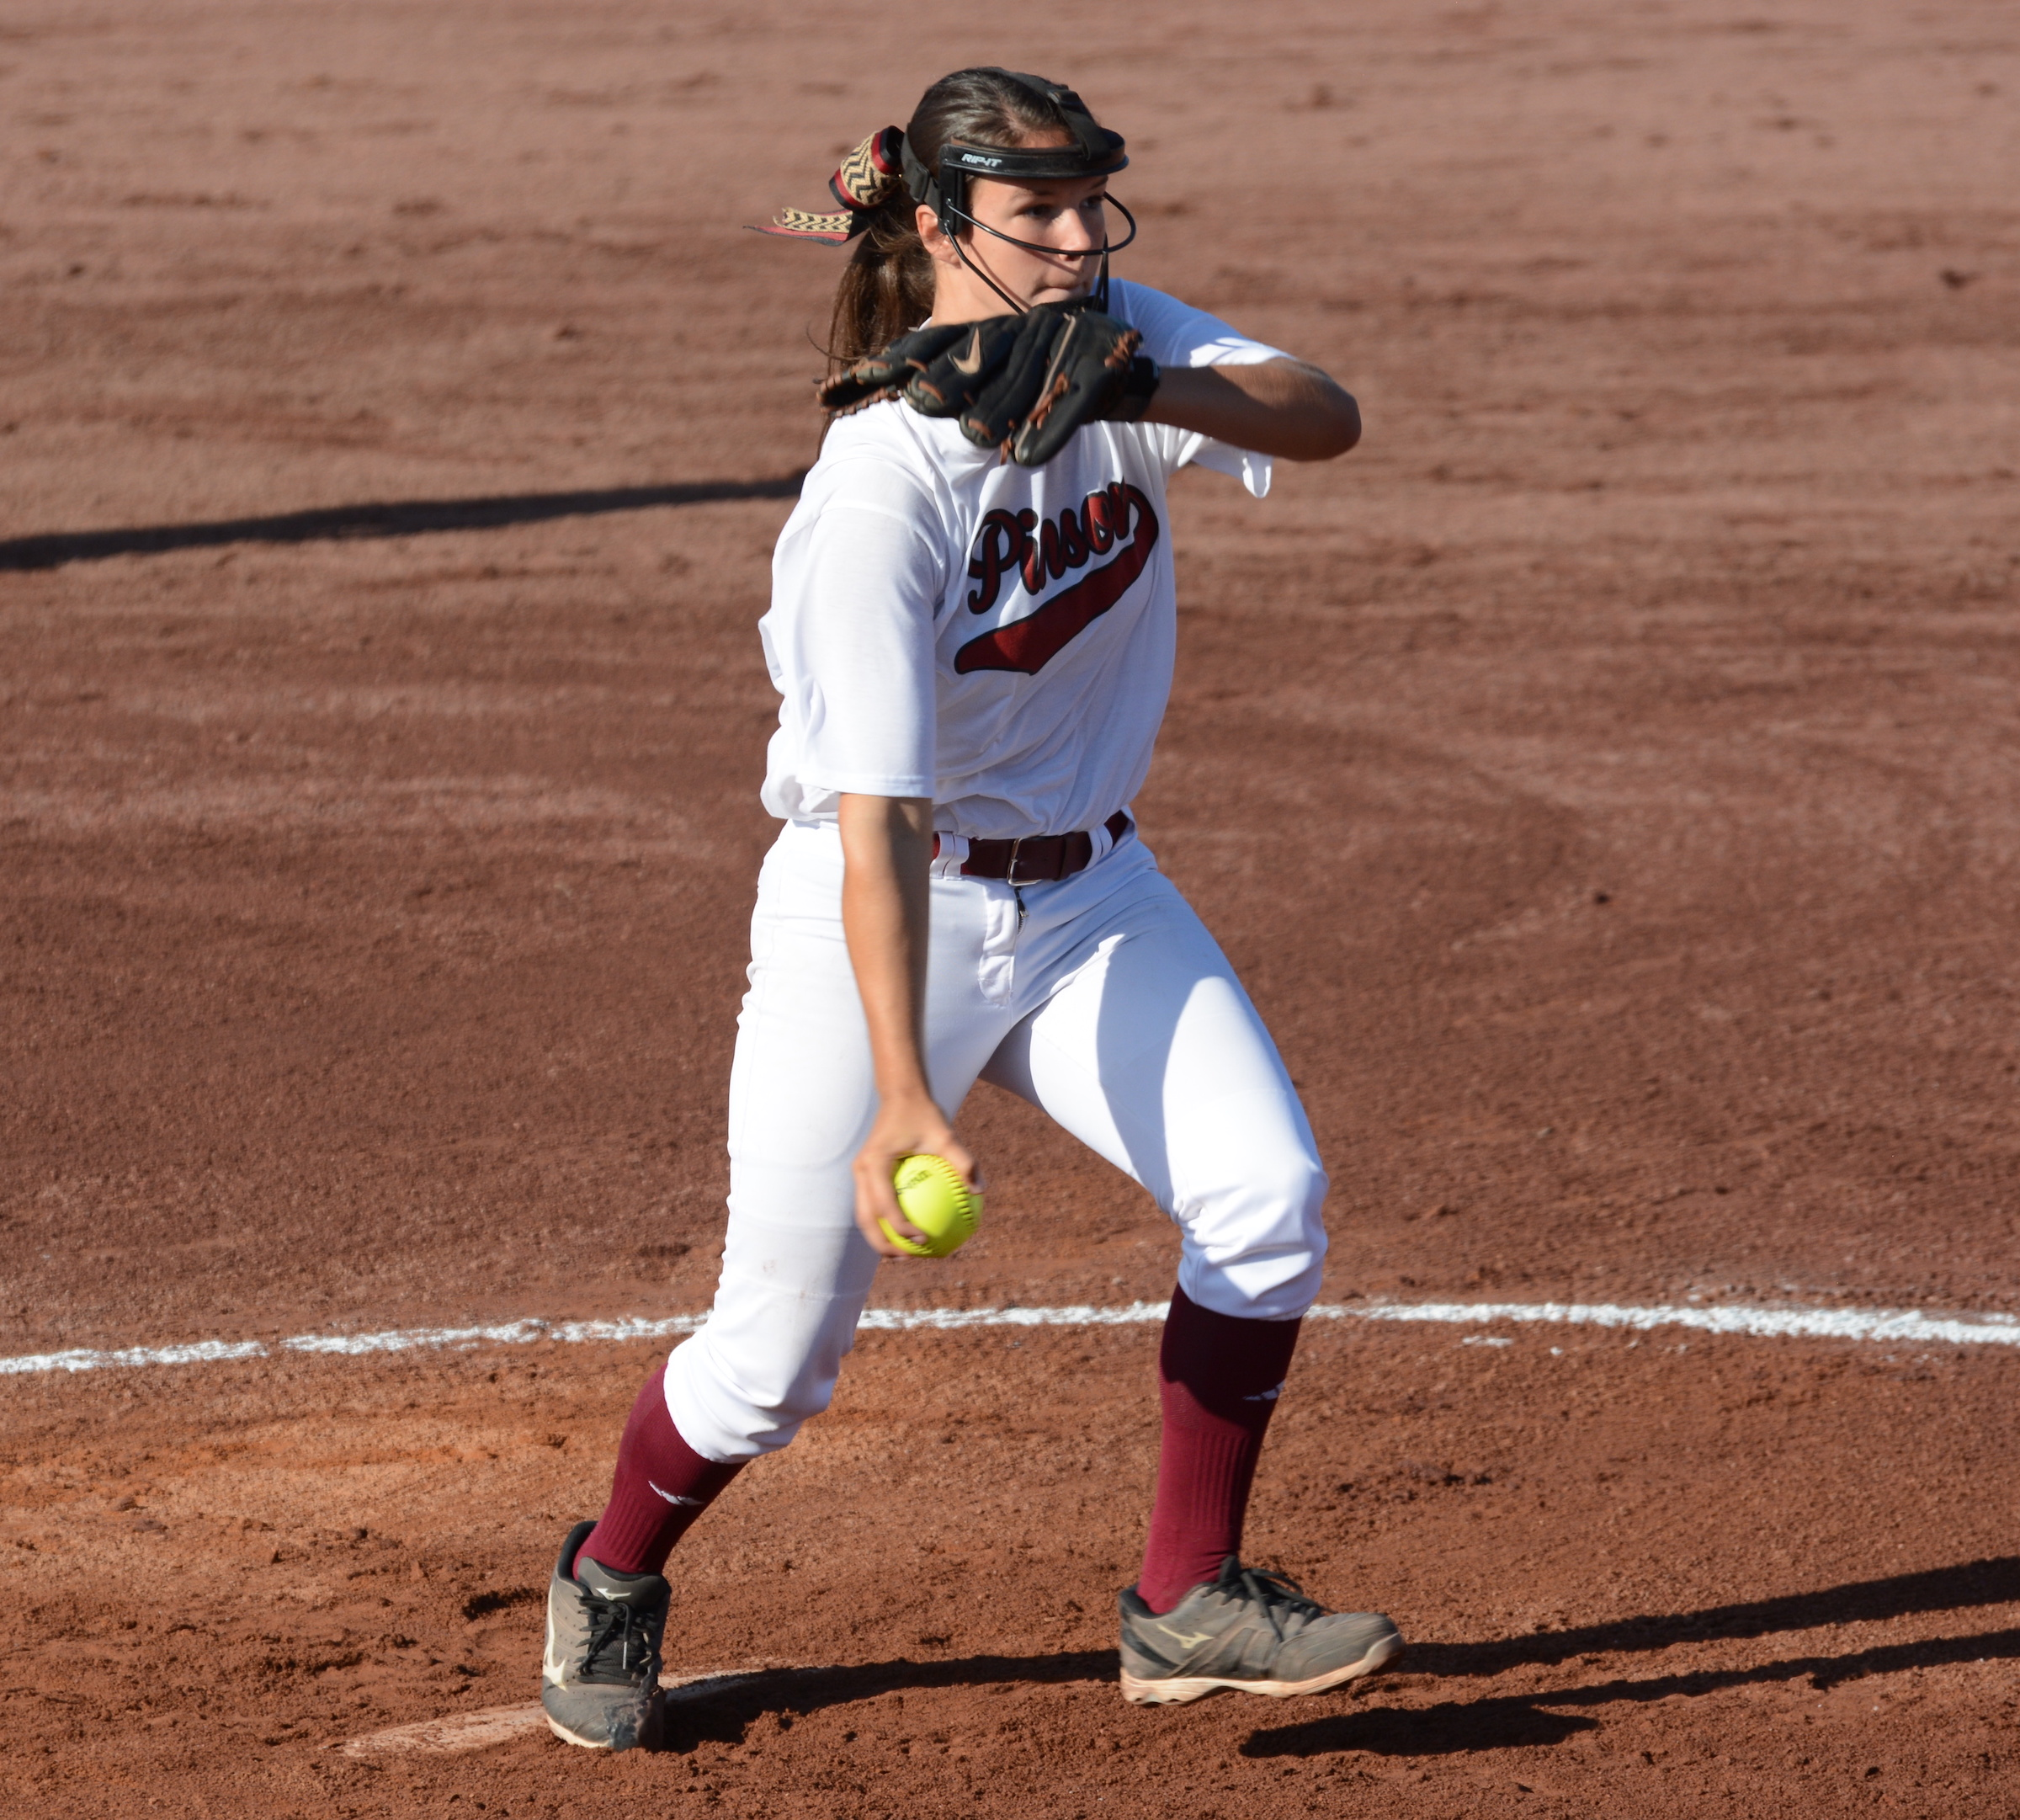 Cougars, Indians eliminated from softball regionals